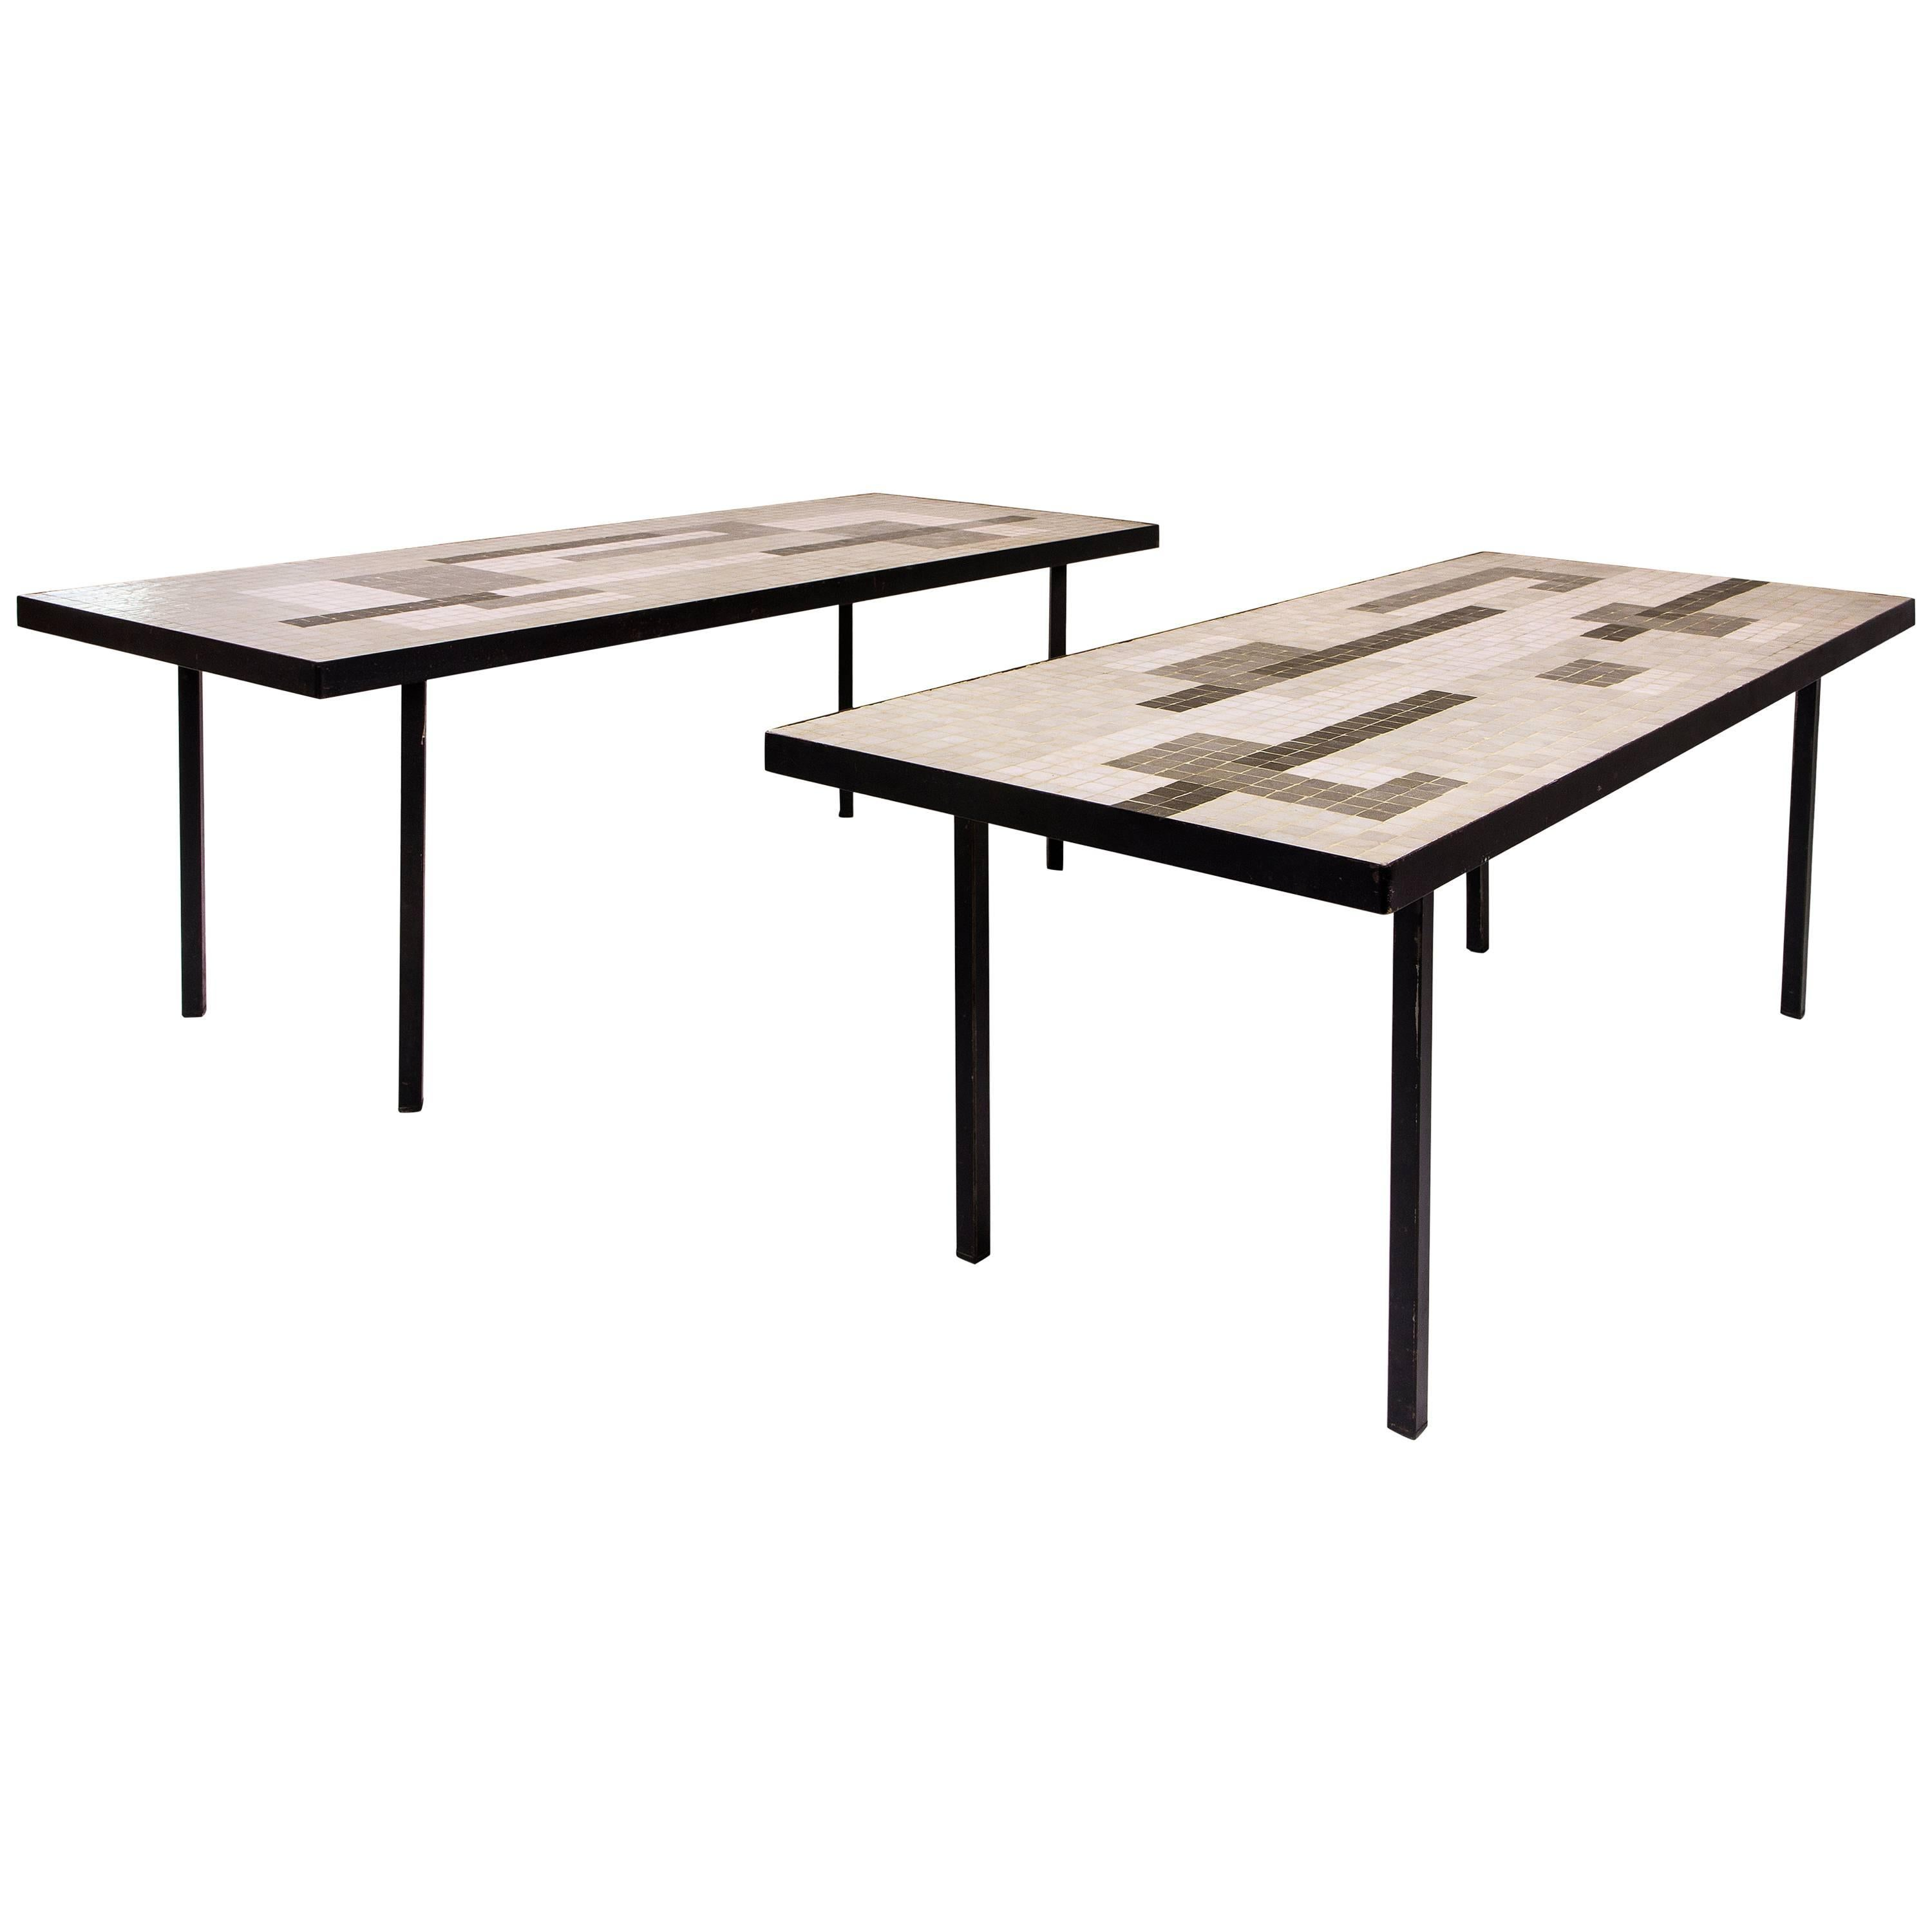 Pair of Ceramic Coffee Tables circa 1960 France For Sale at 1stdibs